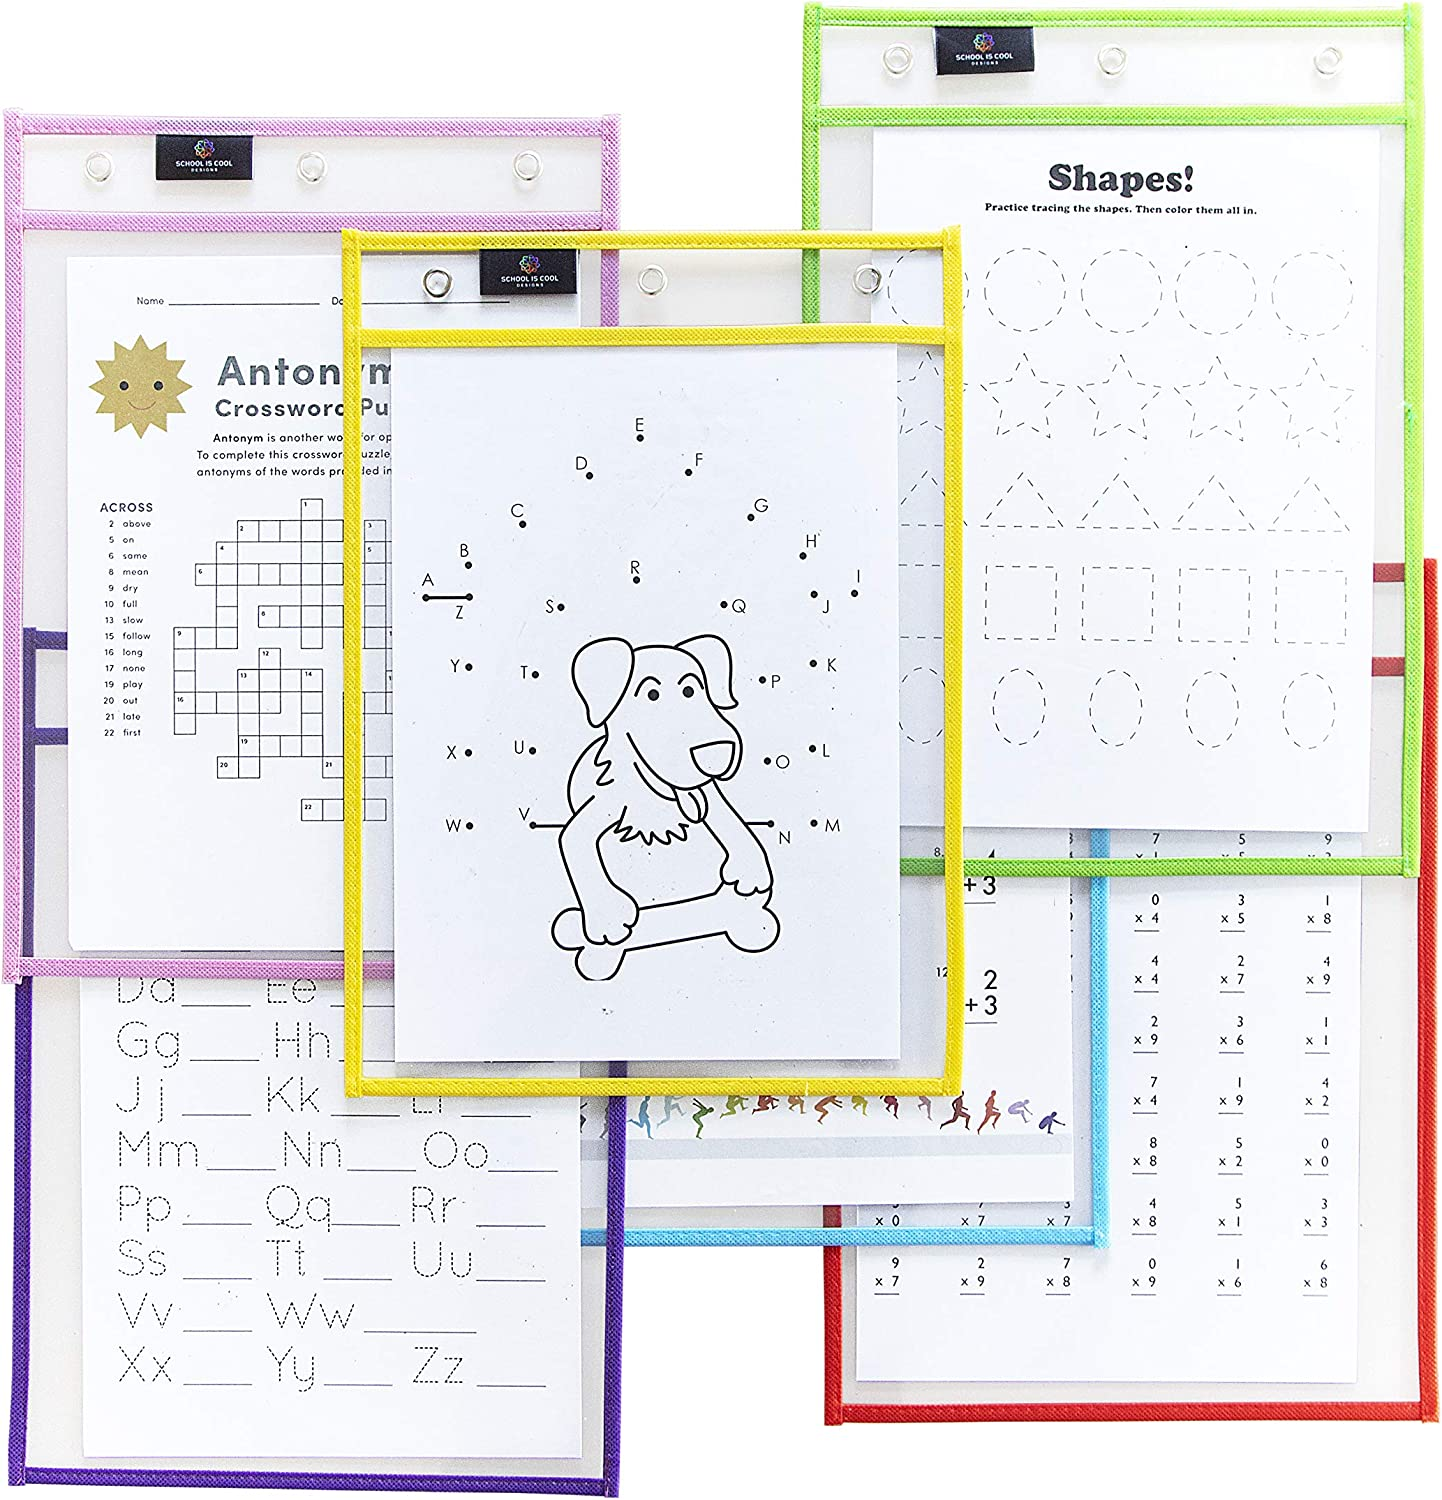 New product! New type School is Cool Designs 10 x14 Dry Sleeves Erase Pocket Popularity Oversized